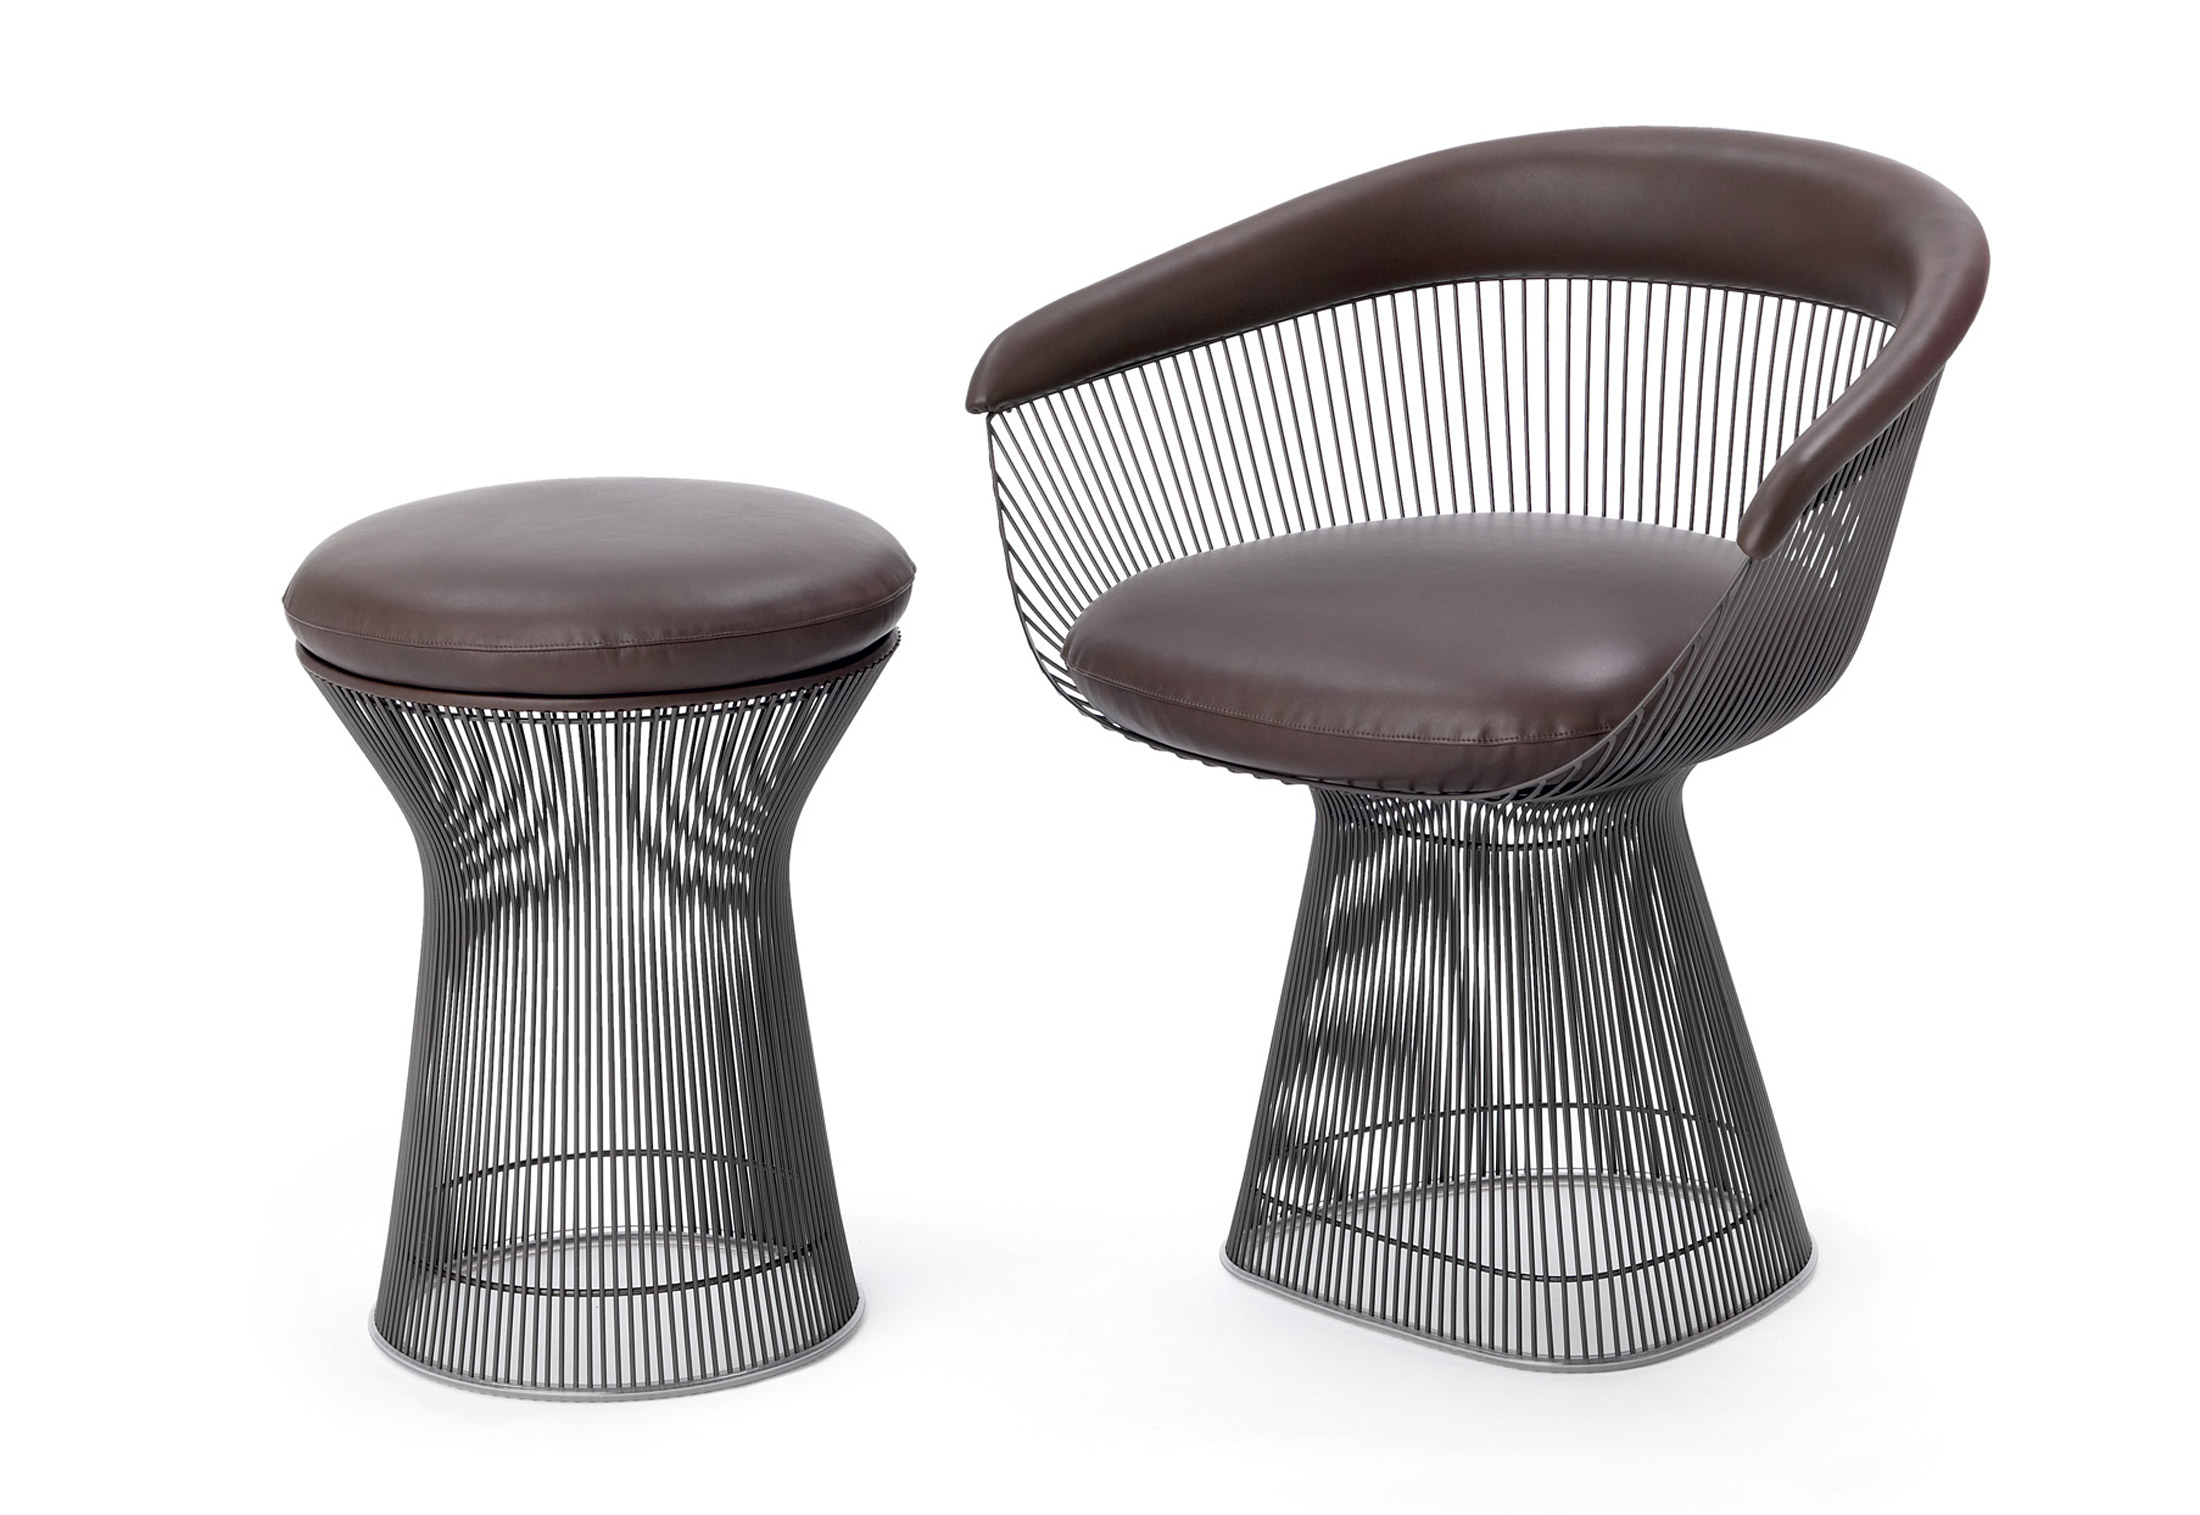 Remarkable Platner Lounge Stool By Knoll Stylepark Spiritservingveterans Wood Chair Design Ideas Spiritservingveteransorg